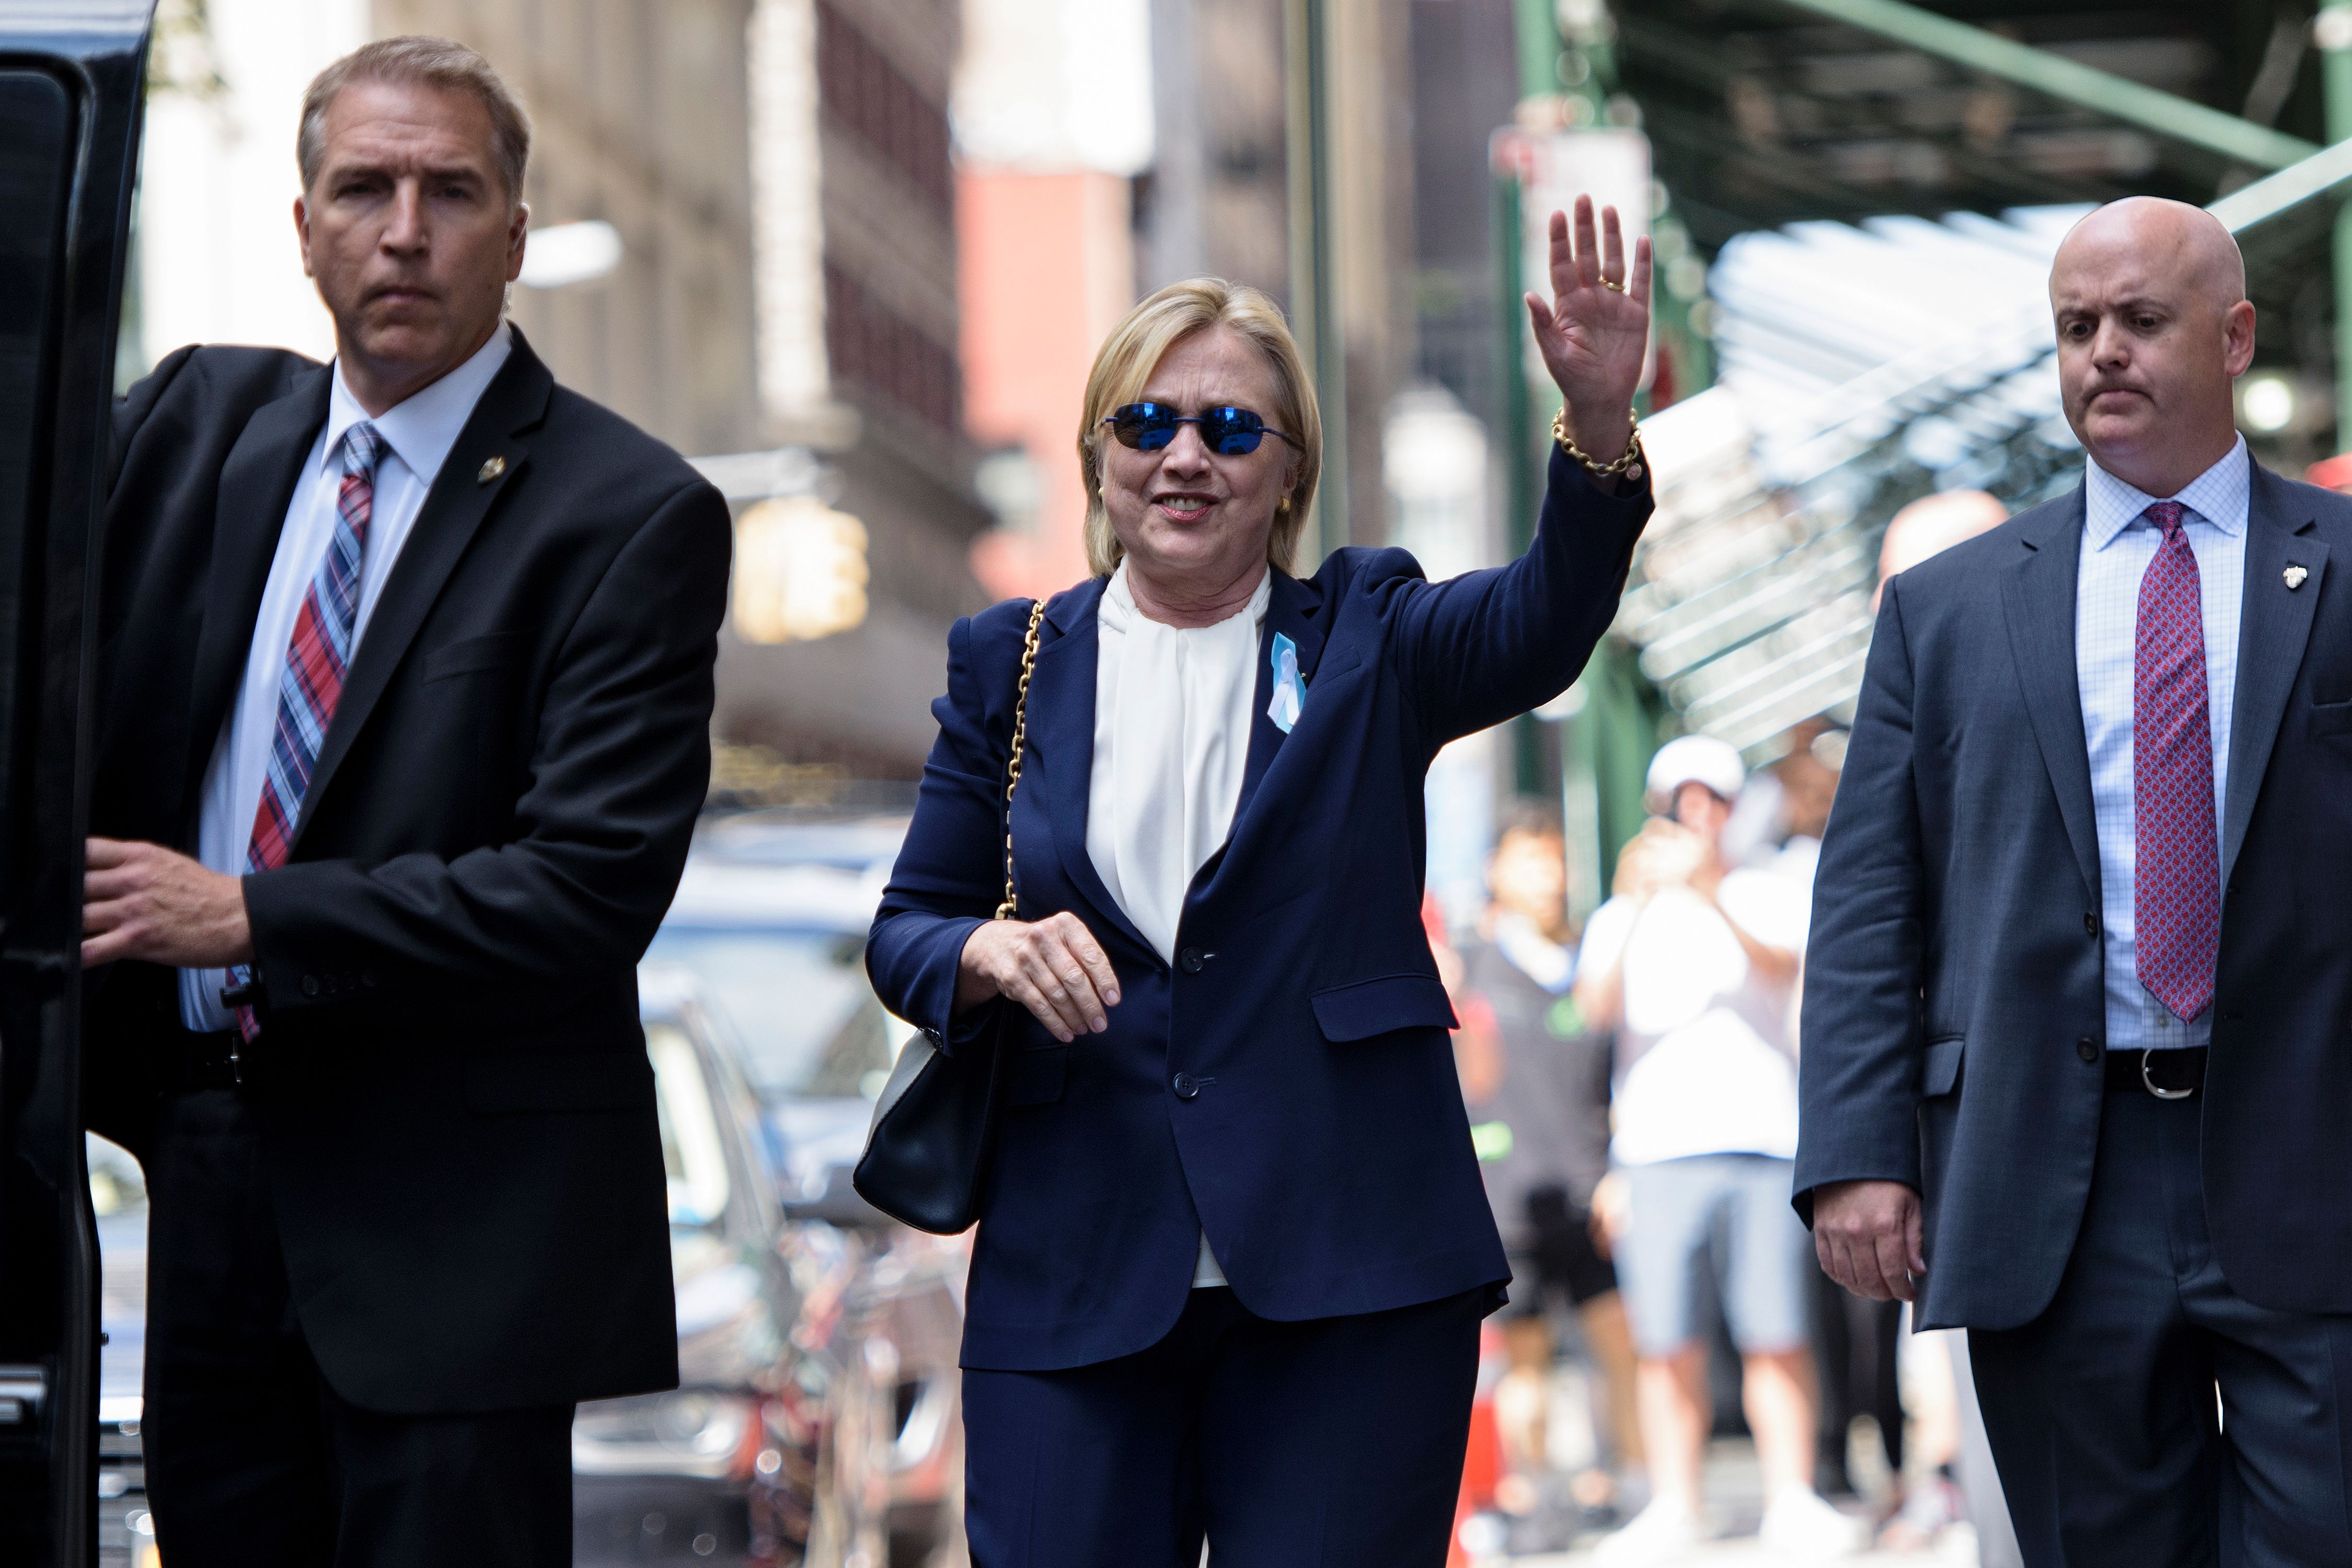 US Democratic presidential nominee Hillary Clinton waves to the press as she leaves her daughter's apartment building after resting on September 11, 2016 in New York.